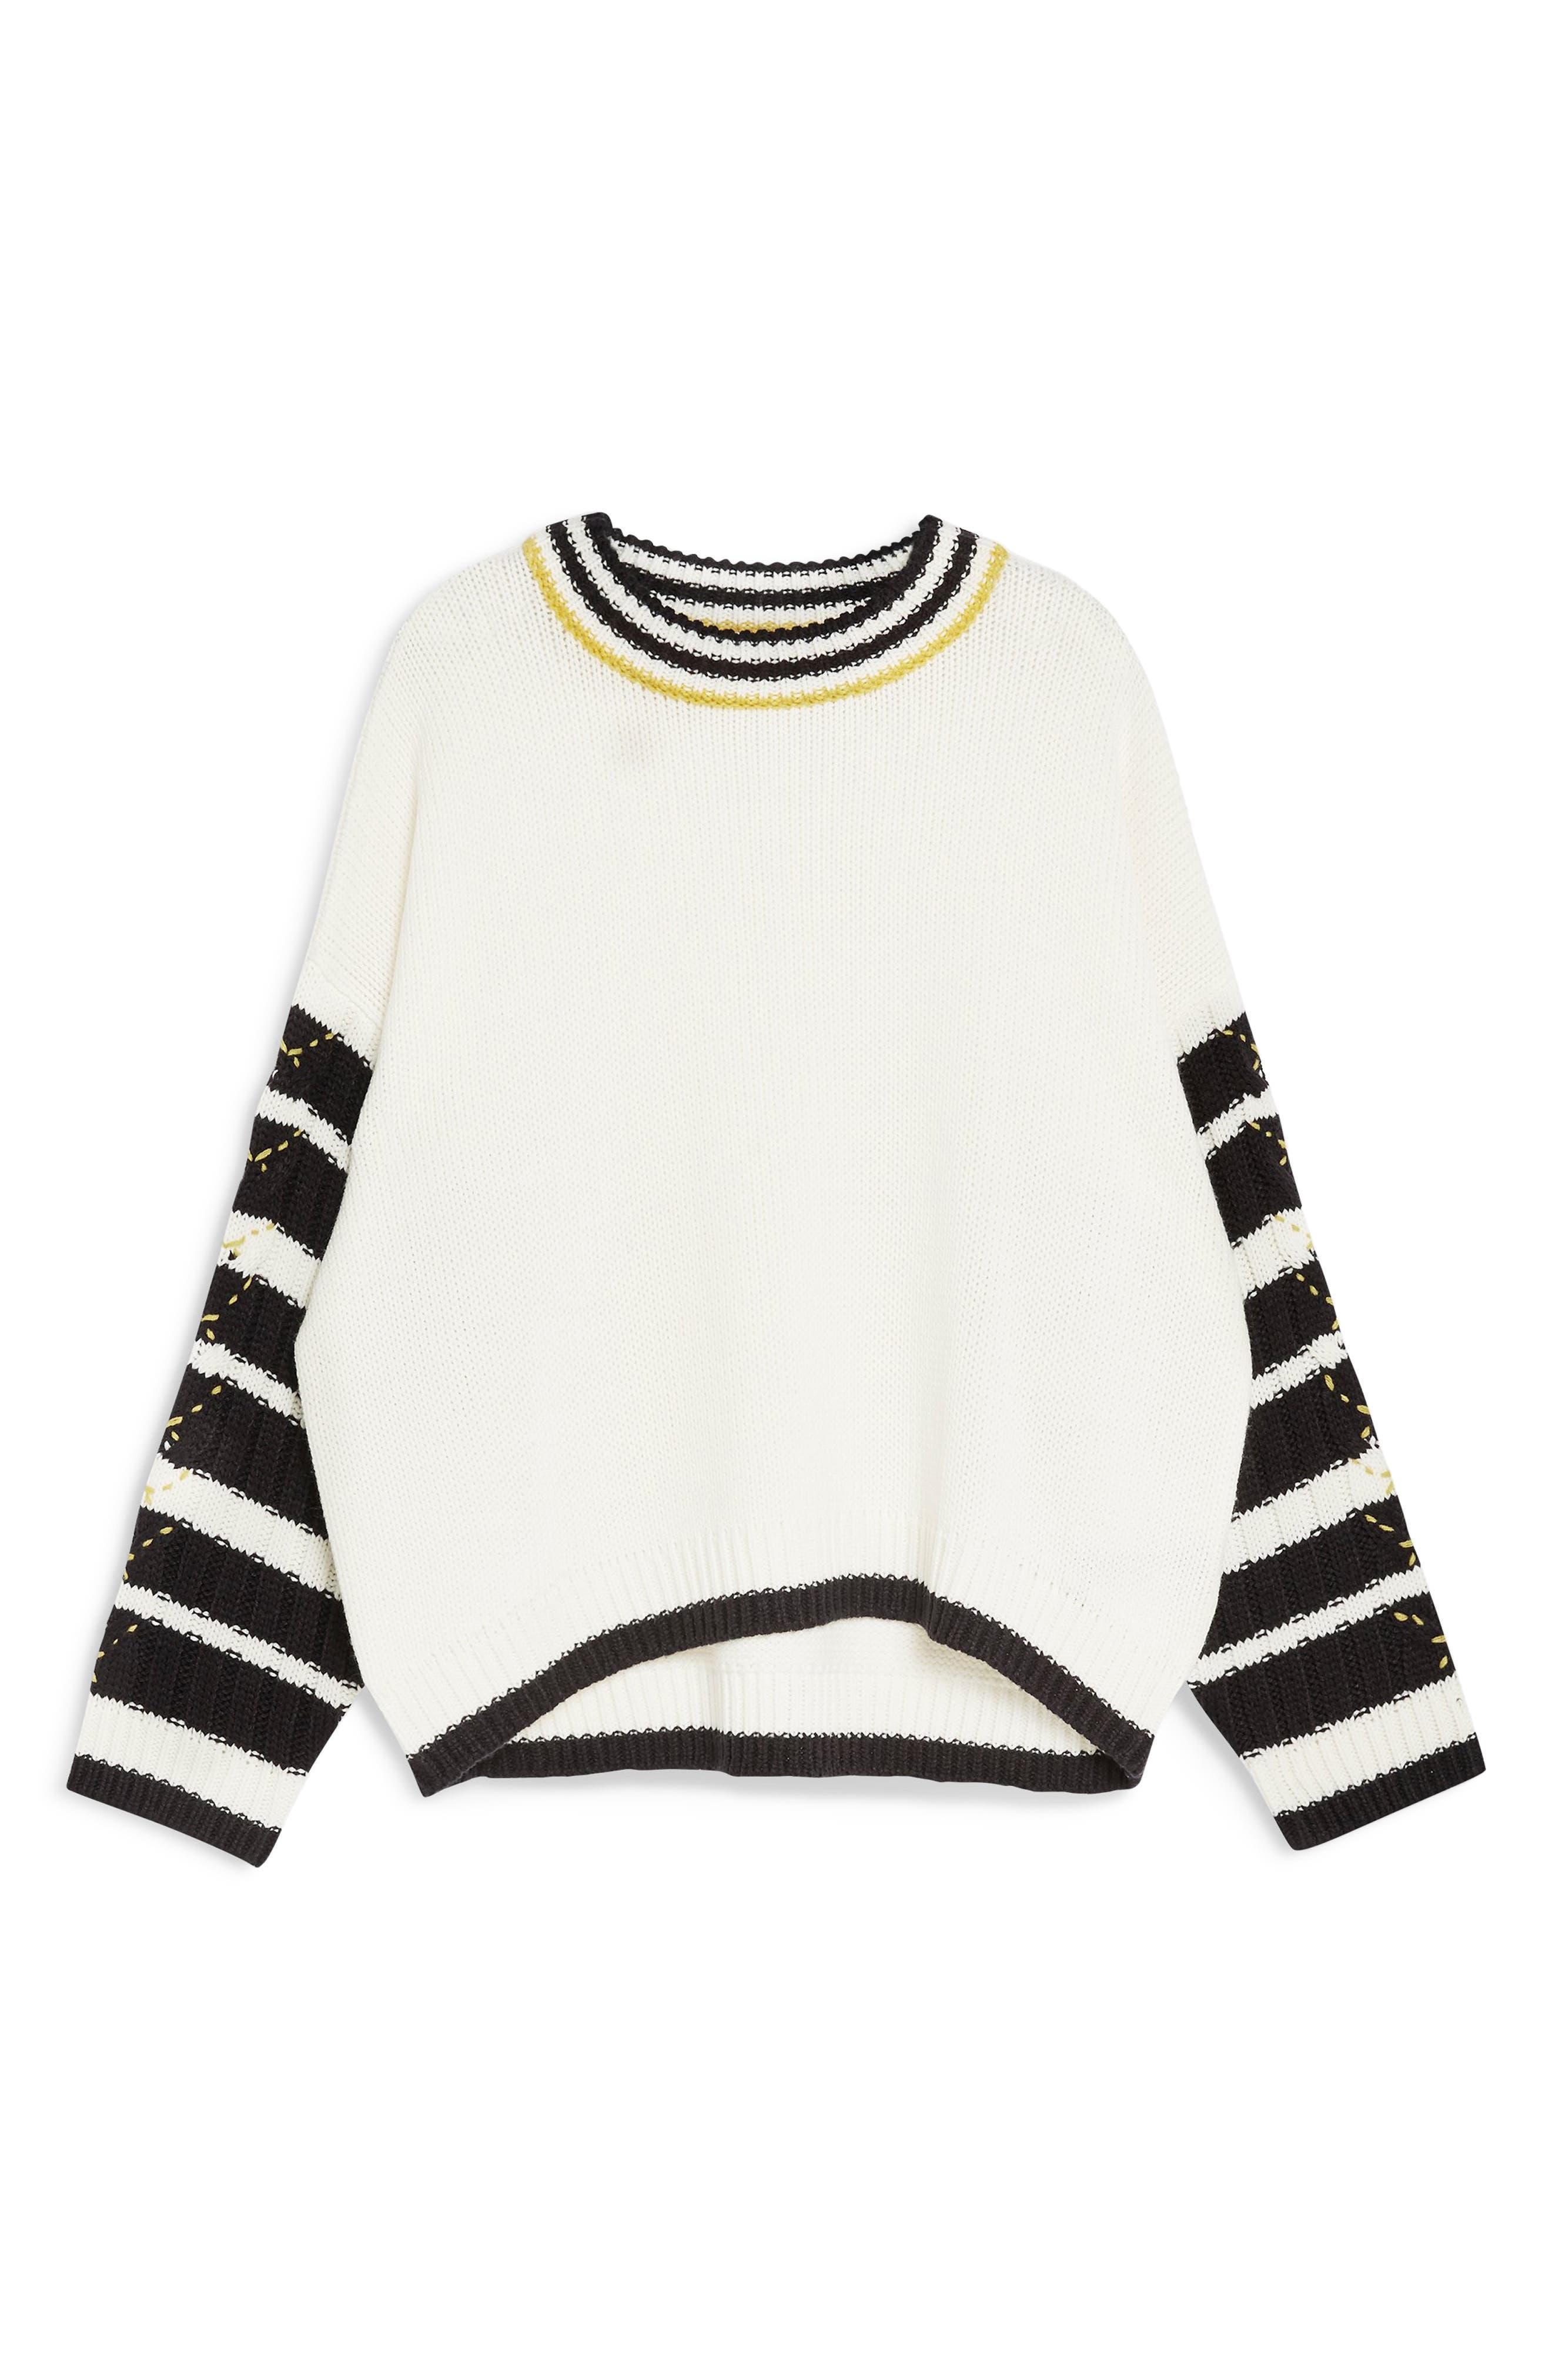 TOPSHOP,                             Whipstitch Pullover,                             Alternate thumbnail 4, color,                             IVORY MULTI